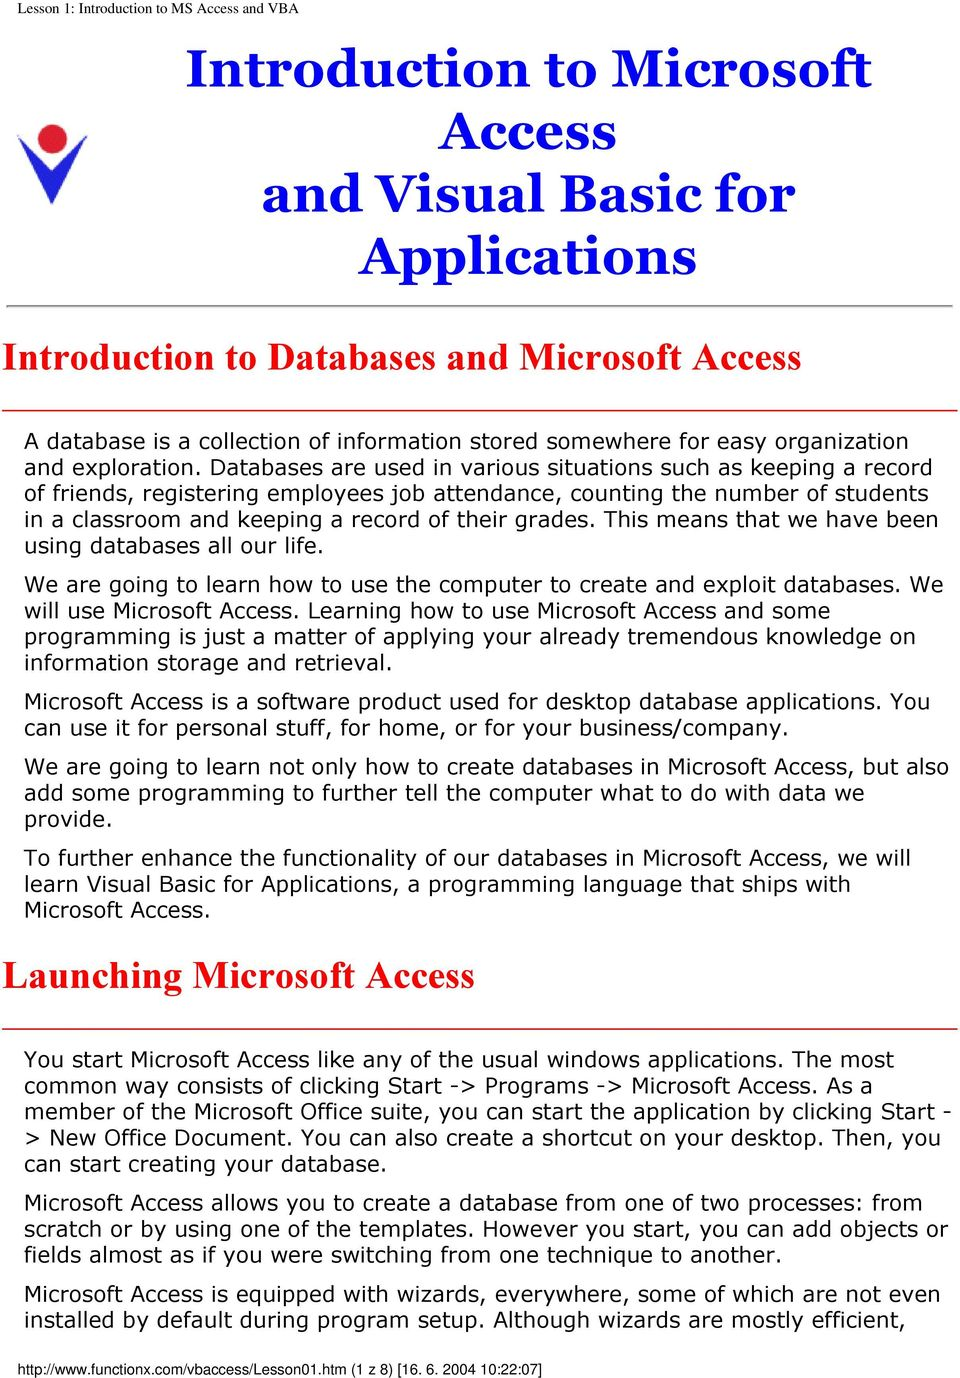 Introduction to Microsoft Access and Visual Basic for